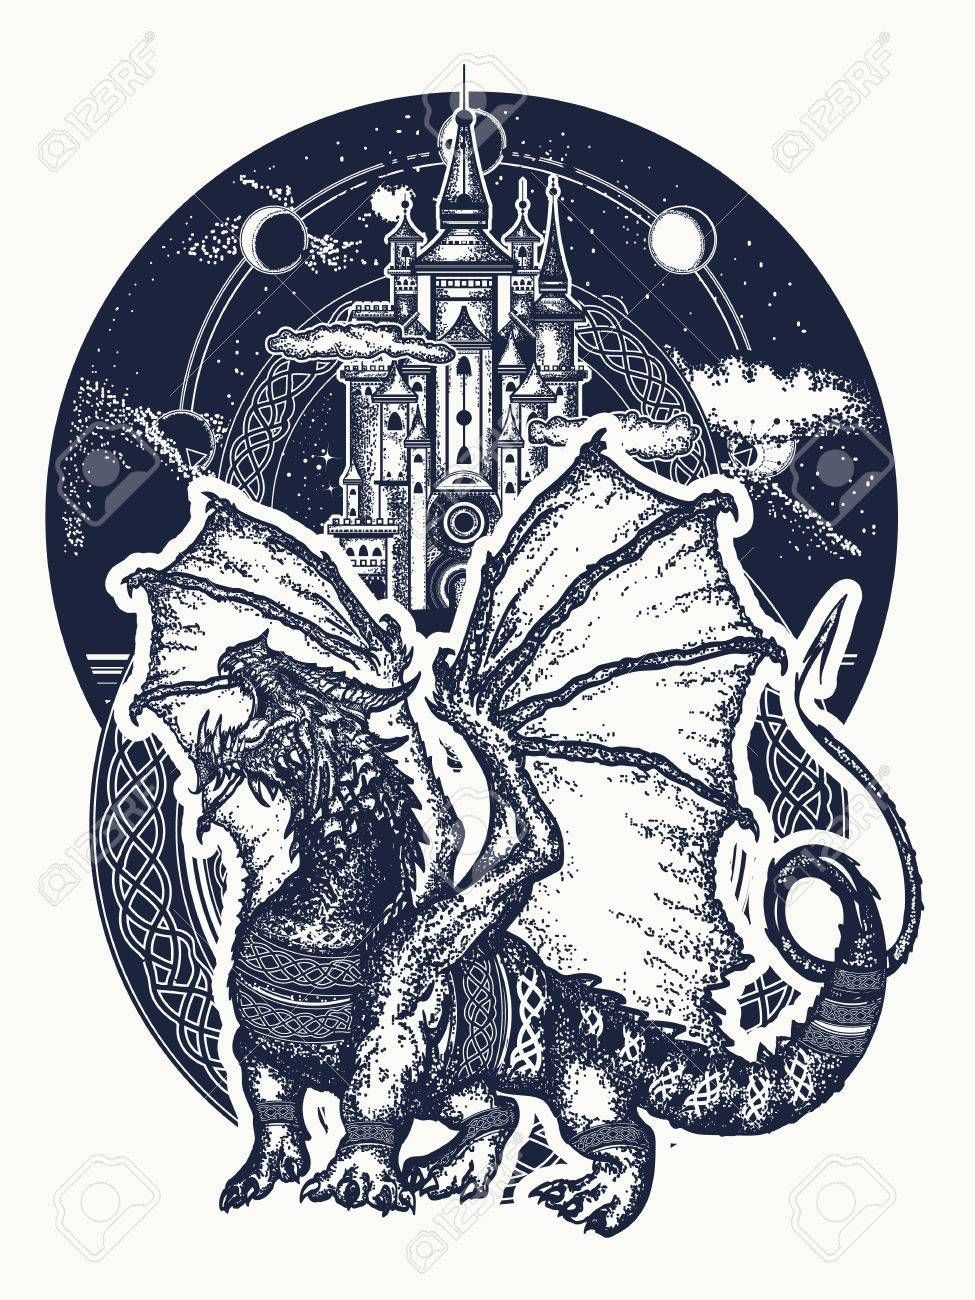 Dragon and castle tattoo art Symbol force fantasy fairy tale Strong dragon with celtic ornament and ancient castle tshirt design Illustration